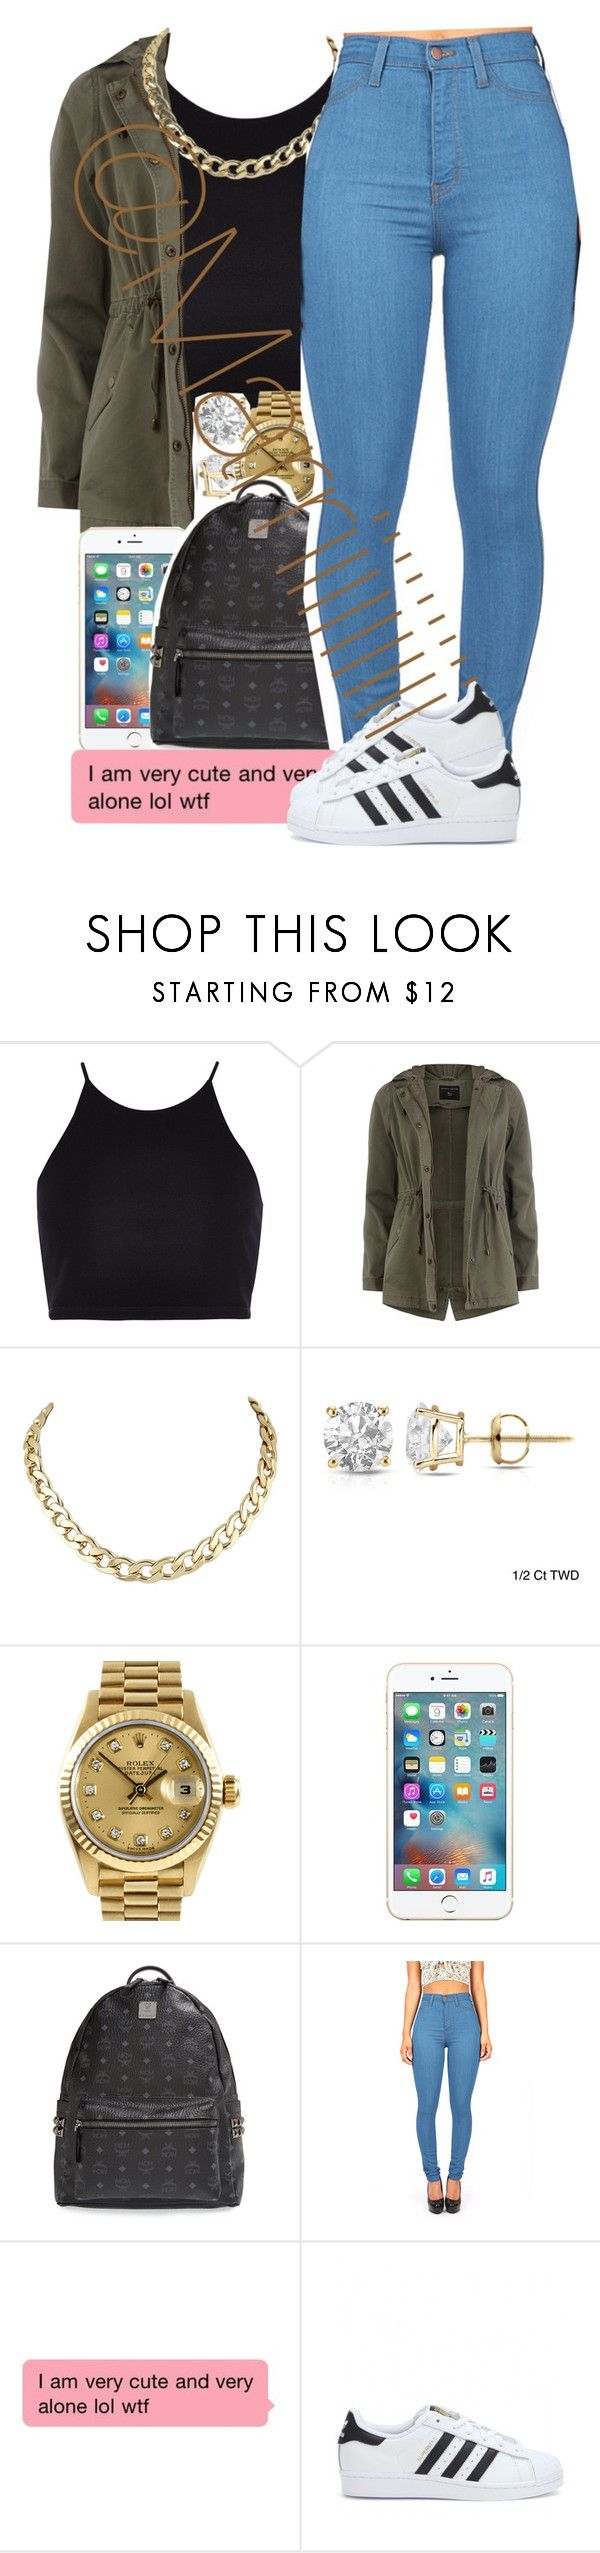 """Follow me on ig @Marriiiiiiiii"" by marriiiiiiiii ❤ liked on Polyvore featuring River Island, Dorothy Perkins, Auriya, Rolex, MCM and adidas"